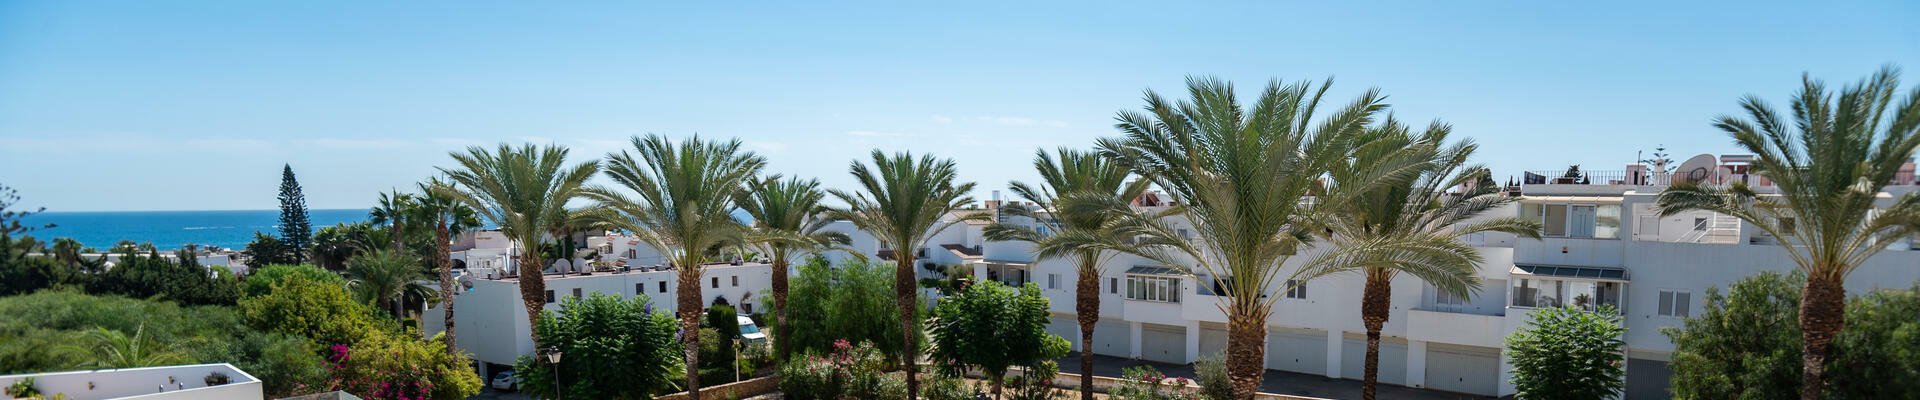 LV801: 3 Bedroom Townhouse for Sale